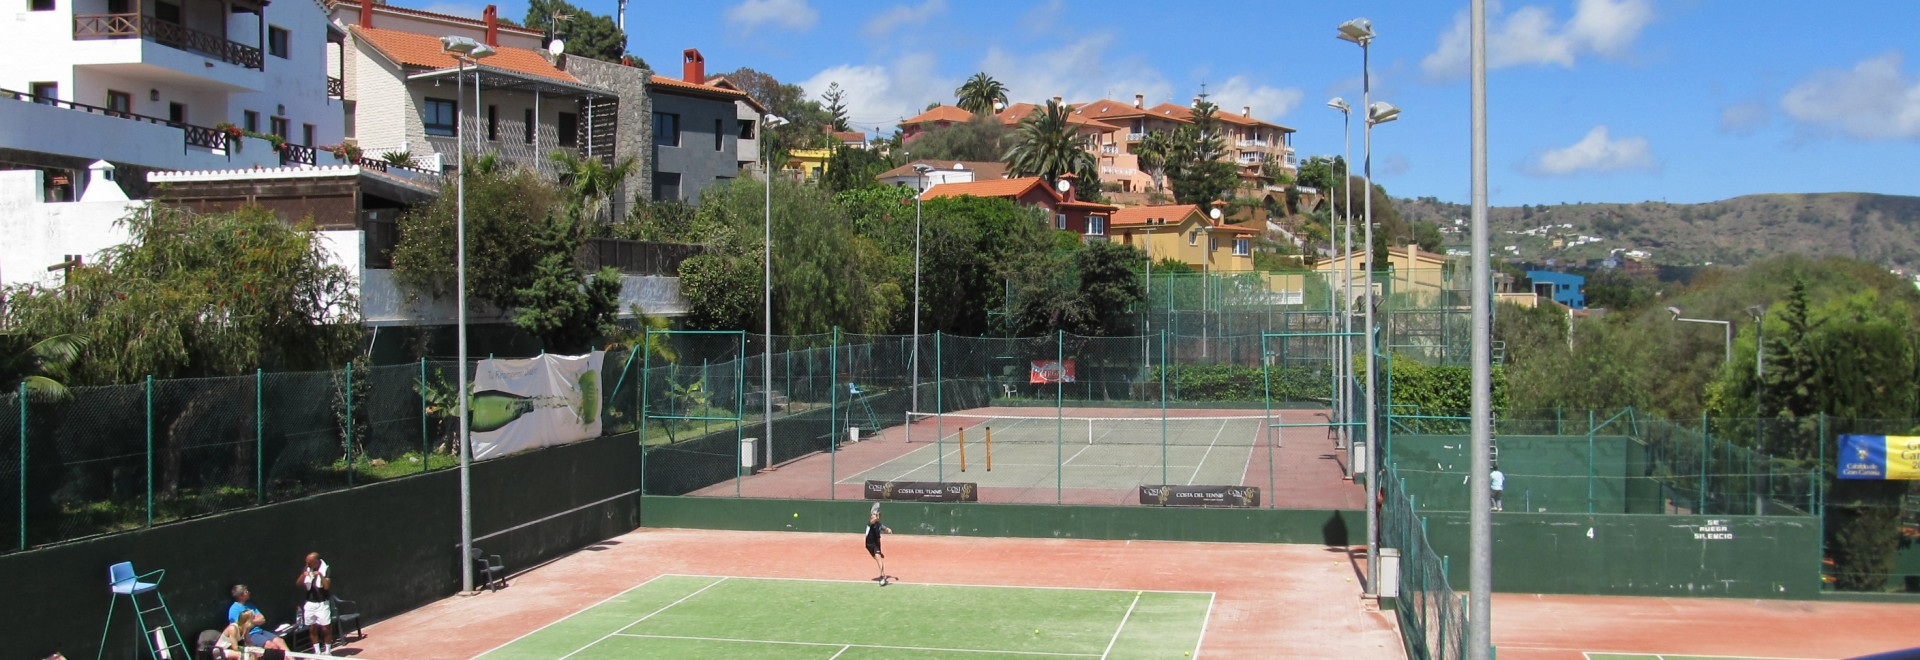 Gran Canaria, Canary Islands - Book. Travel. Play.